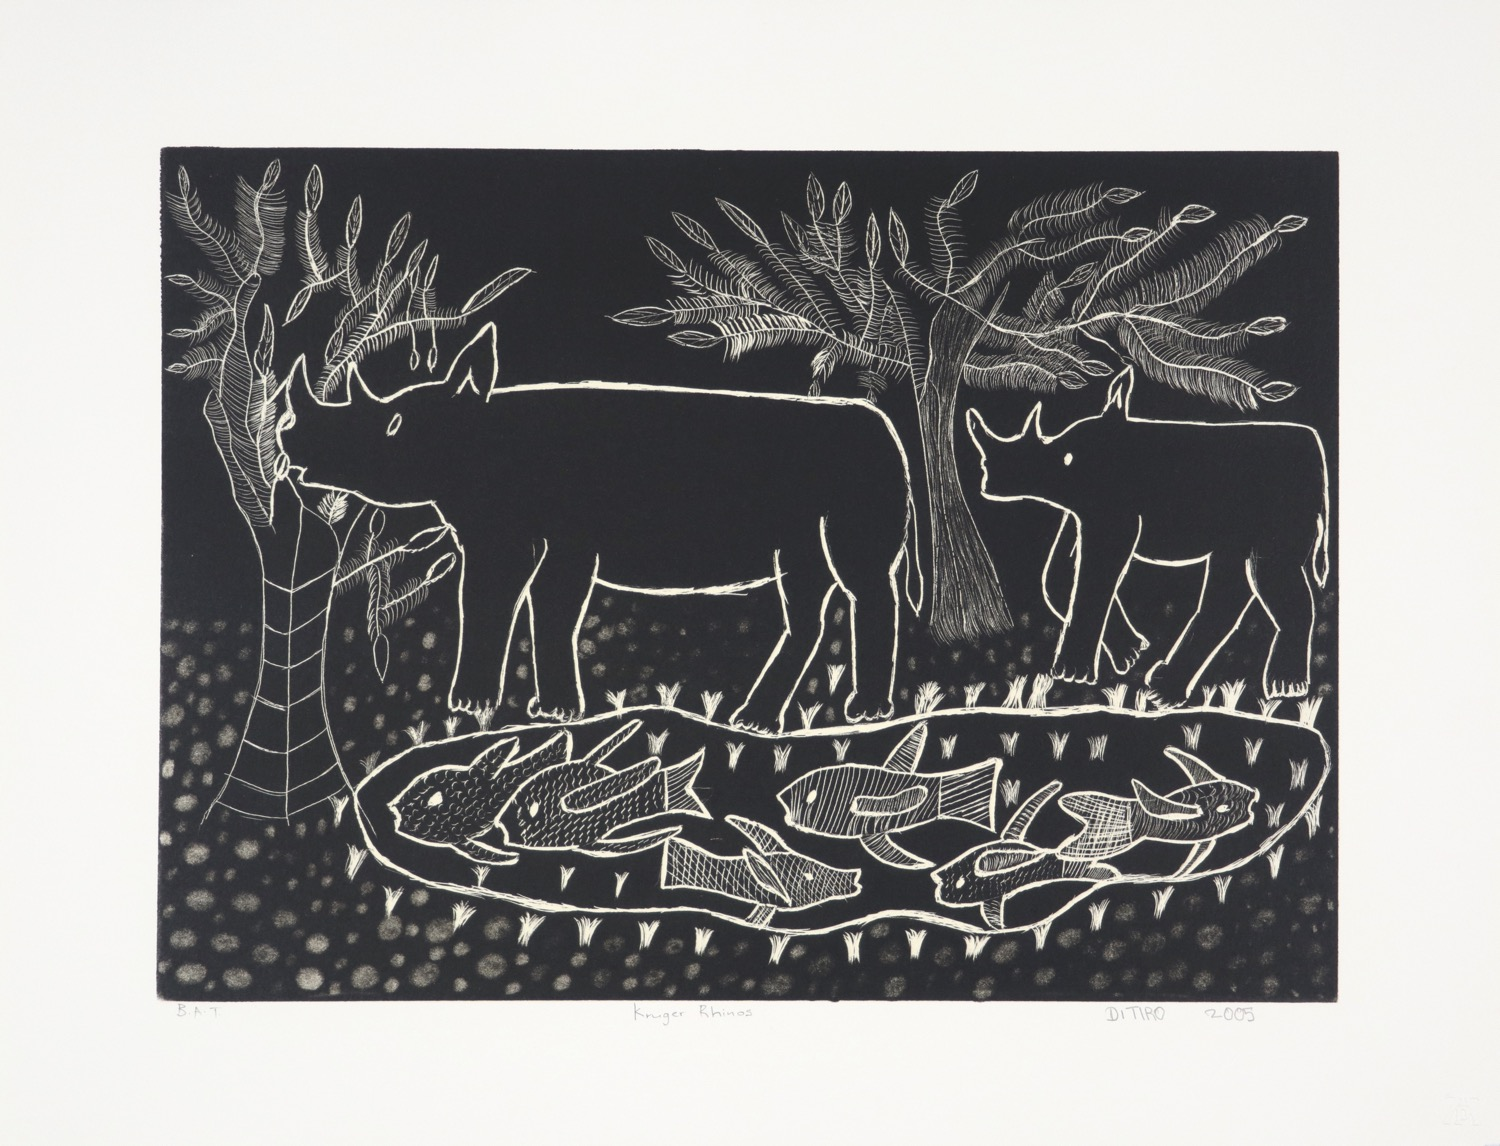 Scratch litho of a rhino cow and calf walking past a pond with fish in it